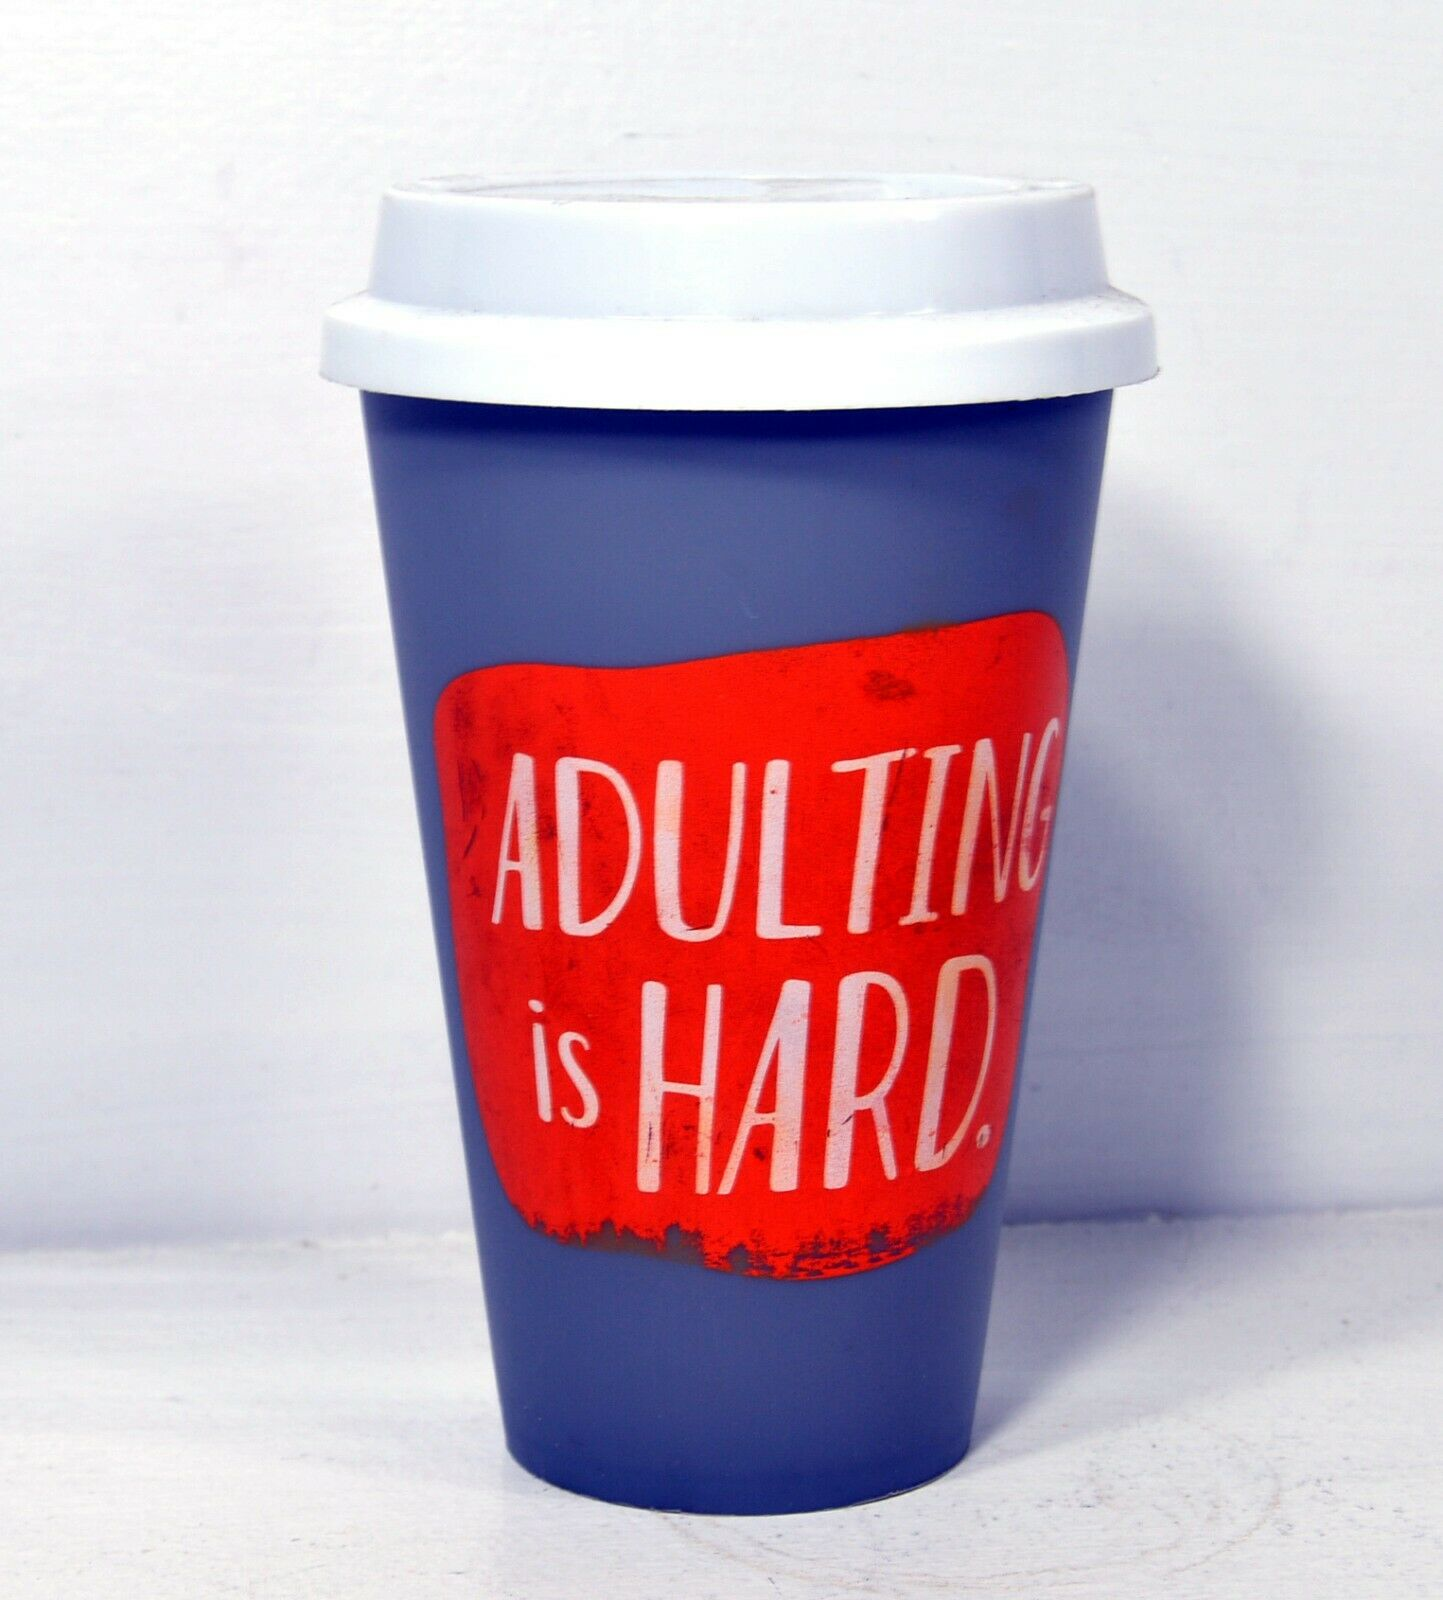 Adulting is Hard 16oz Travel Mug - Plastic Reusable for Coffee Tea Hot Beverage